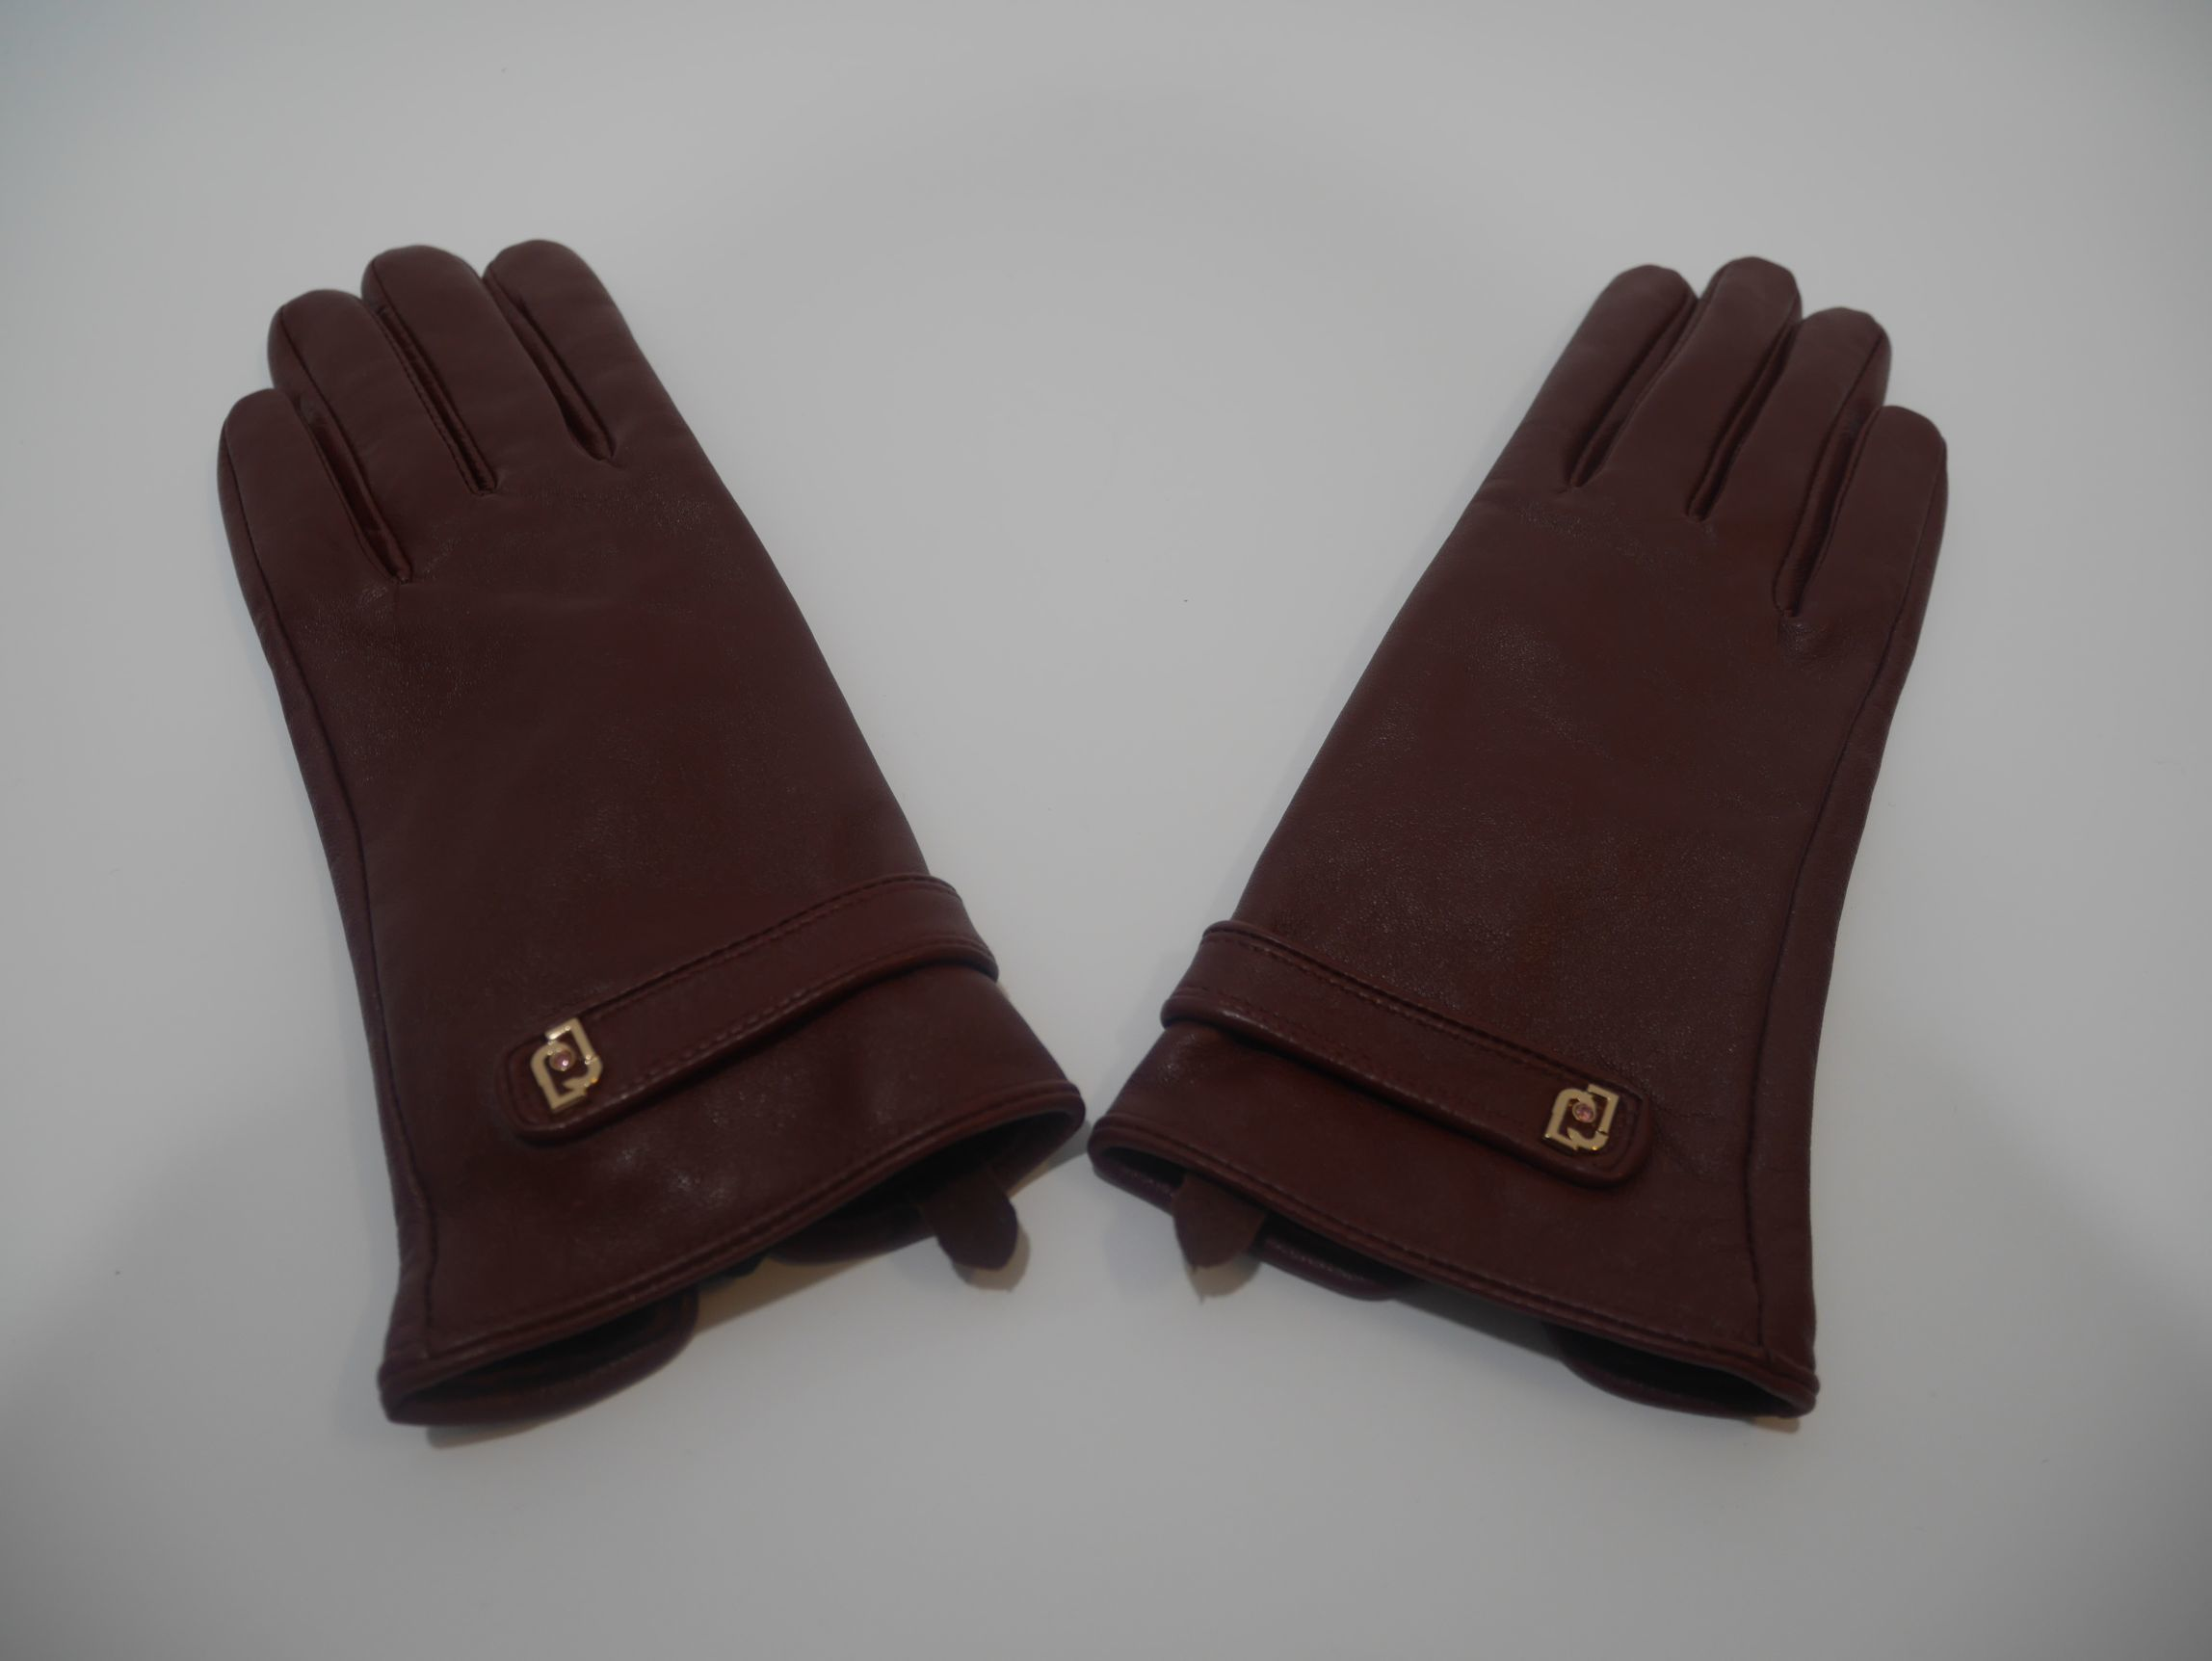 369096 P0016 91725 LEATHER GLOVES 2